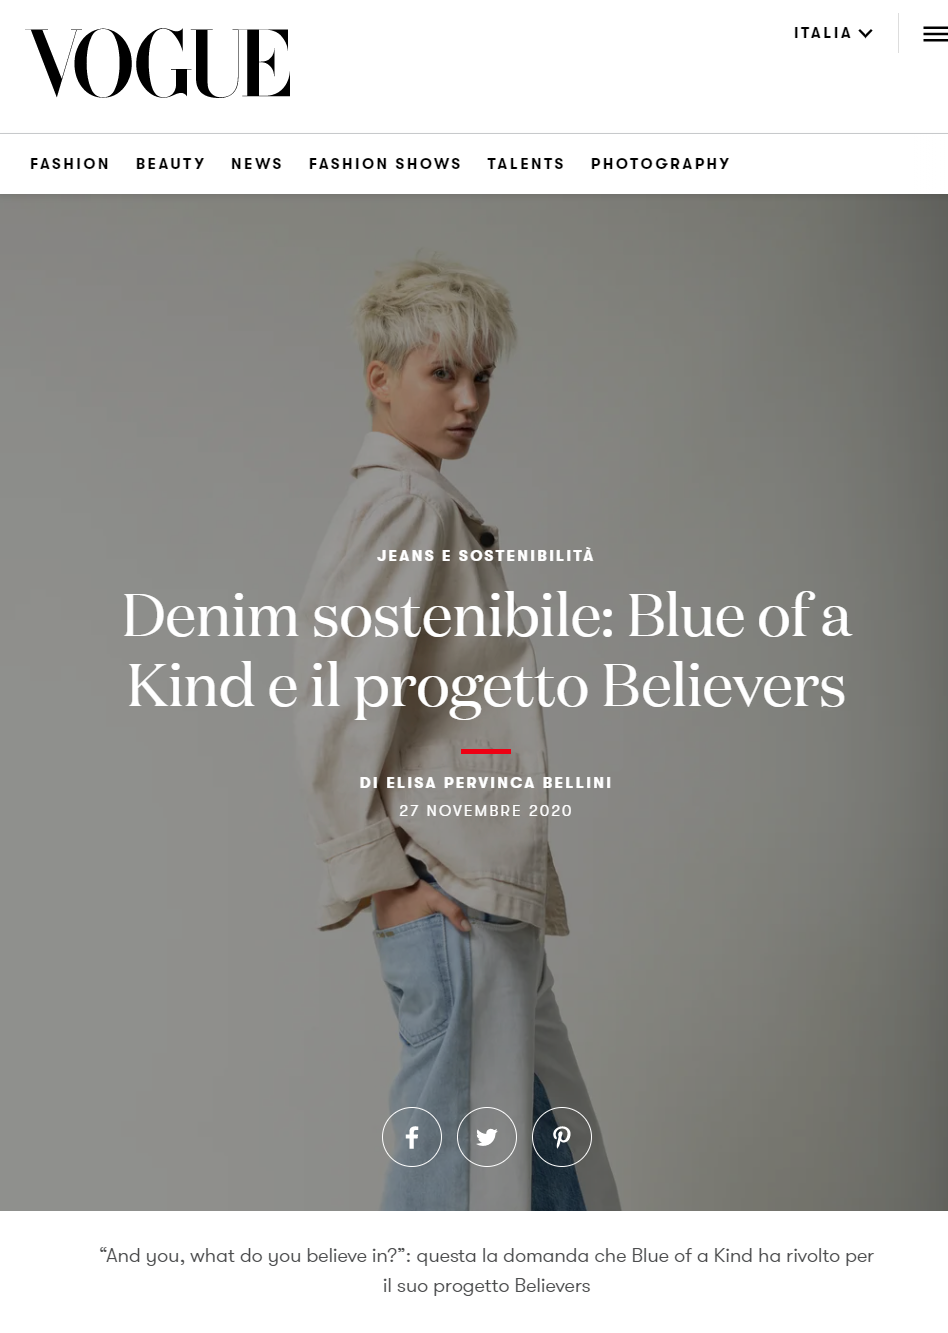 Vogue.it - Denim sostenibile: Blue of a Kind e il progetto believers